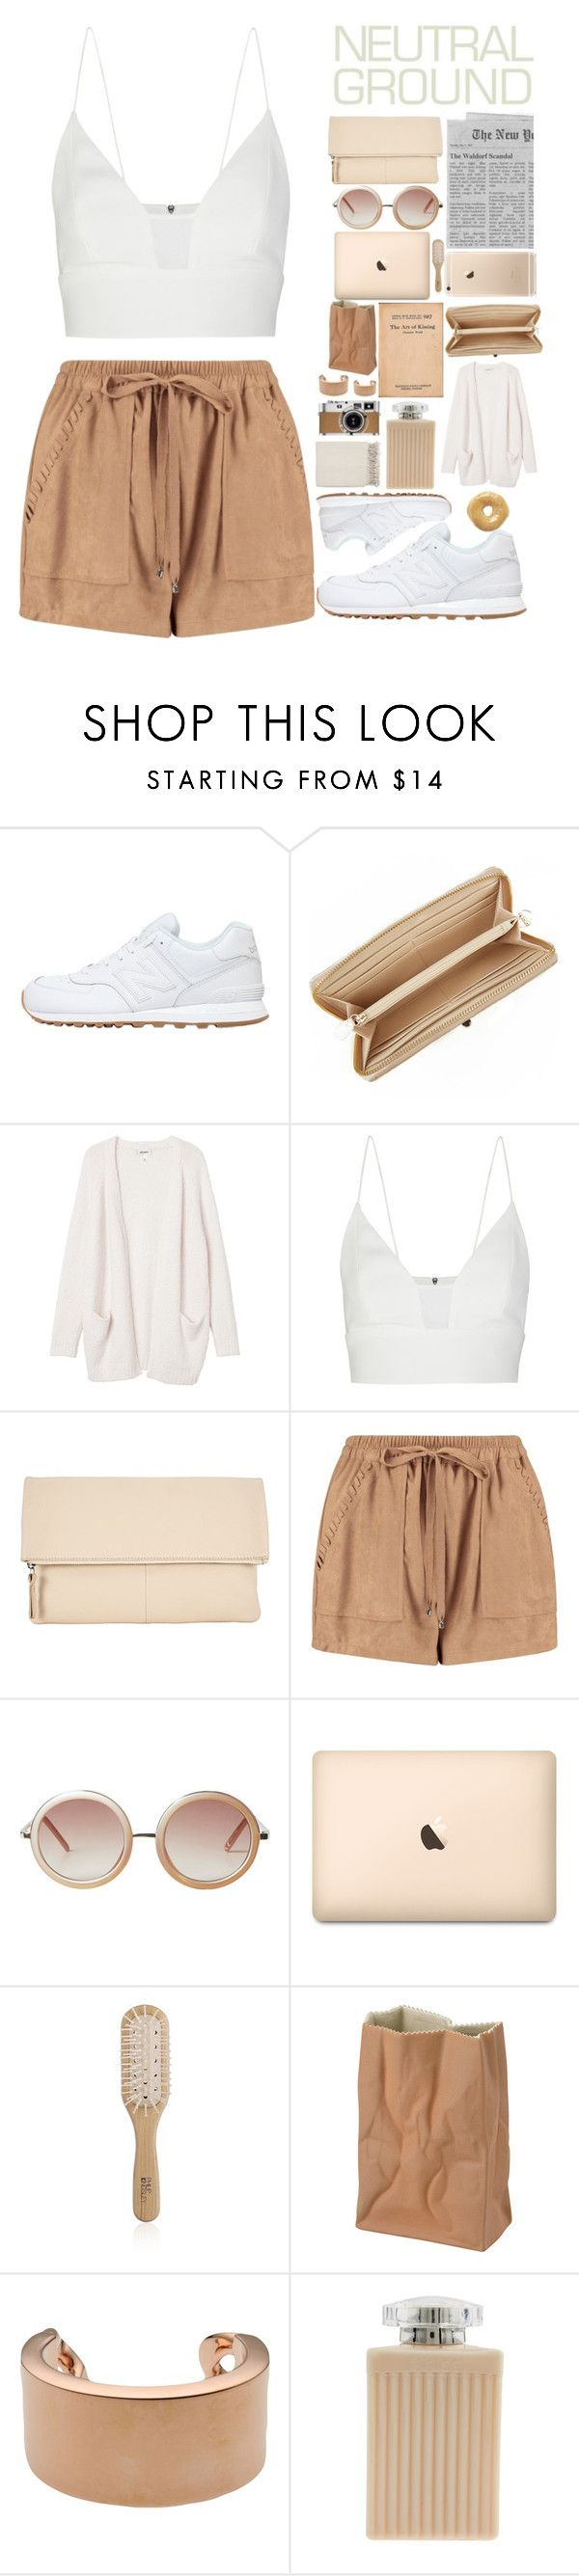 """""""neutral"""" by experimental-m ❤ liked on Polyvore featuring New Balance, DKNY, Monki, Narciso Rodriguez, Kin by John Lewis, Boohoo, Philip Kingsley, Rosenthal, Maison Margiela and Chloé"""